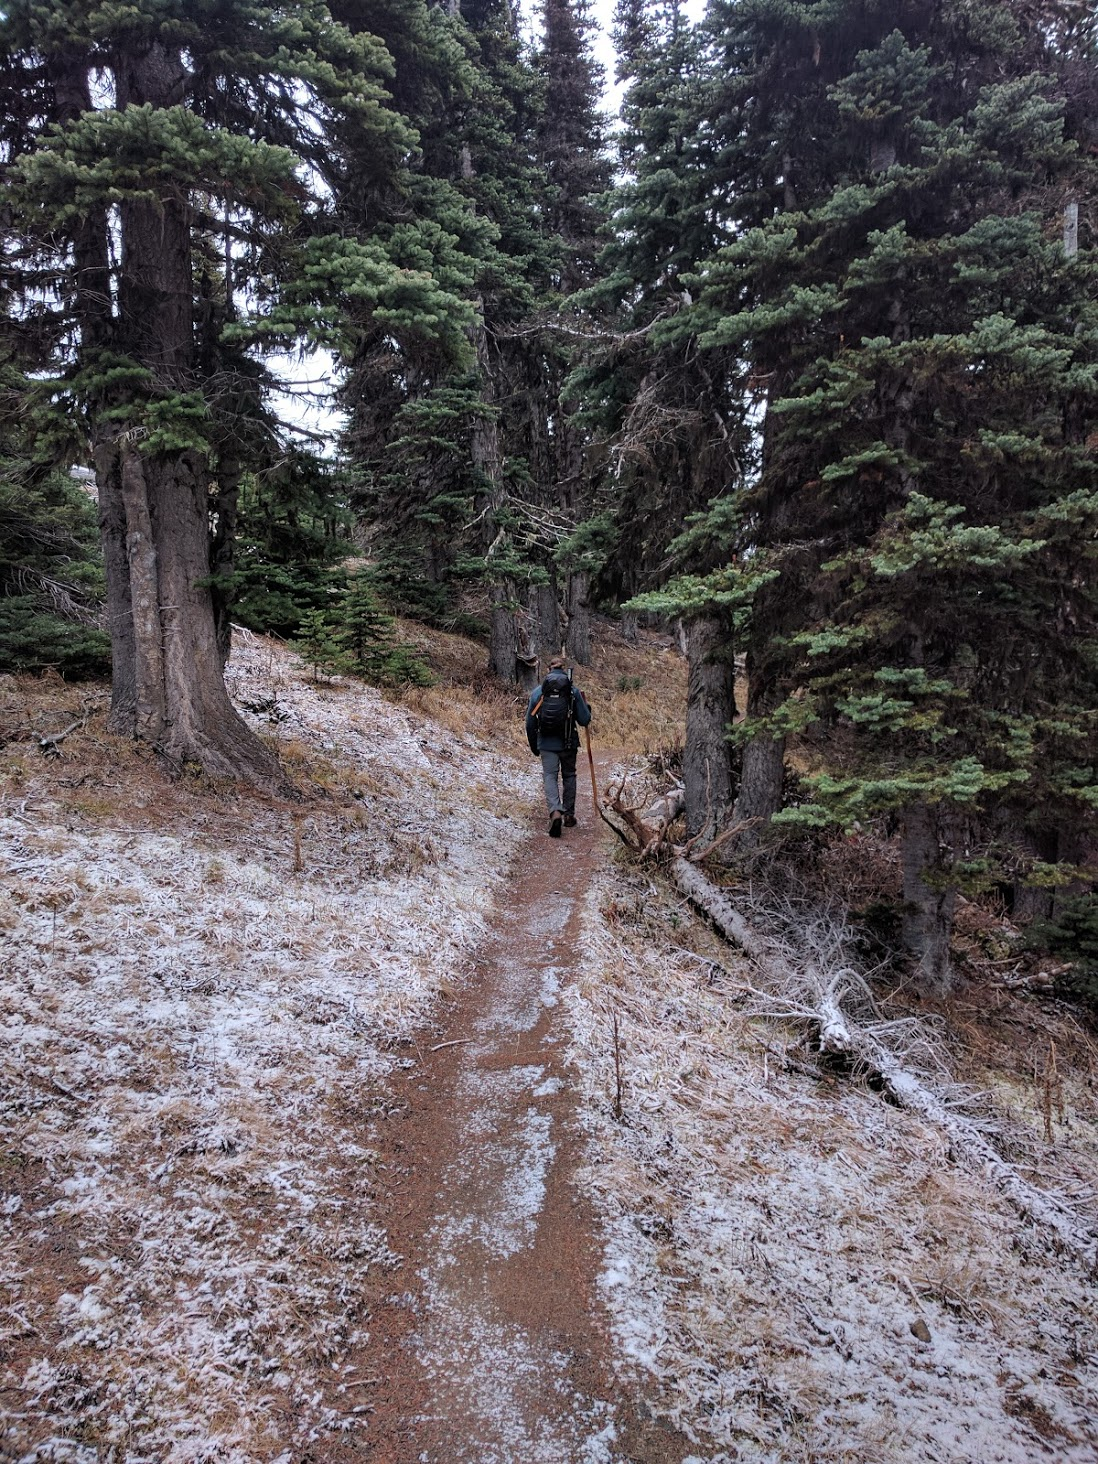 Hiking to Deer Park Campground. Photo courtesy of Jordan Long